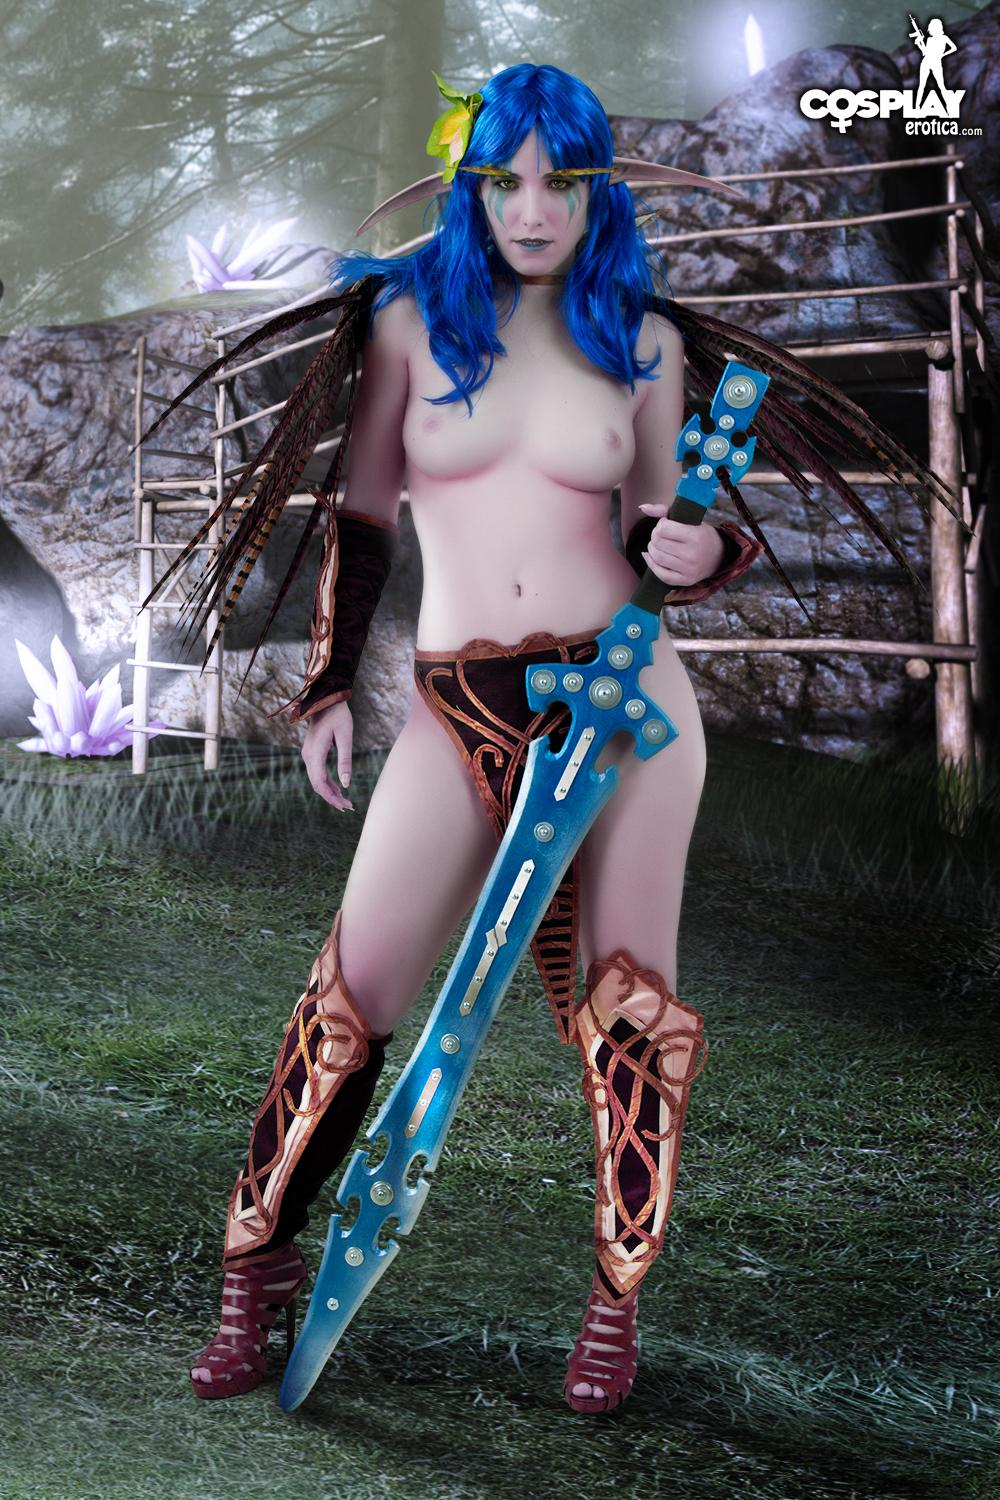 Warcraft cosplay porn pictures pron streaming